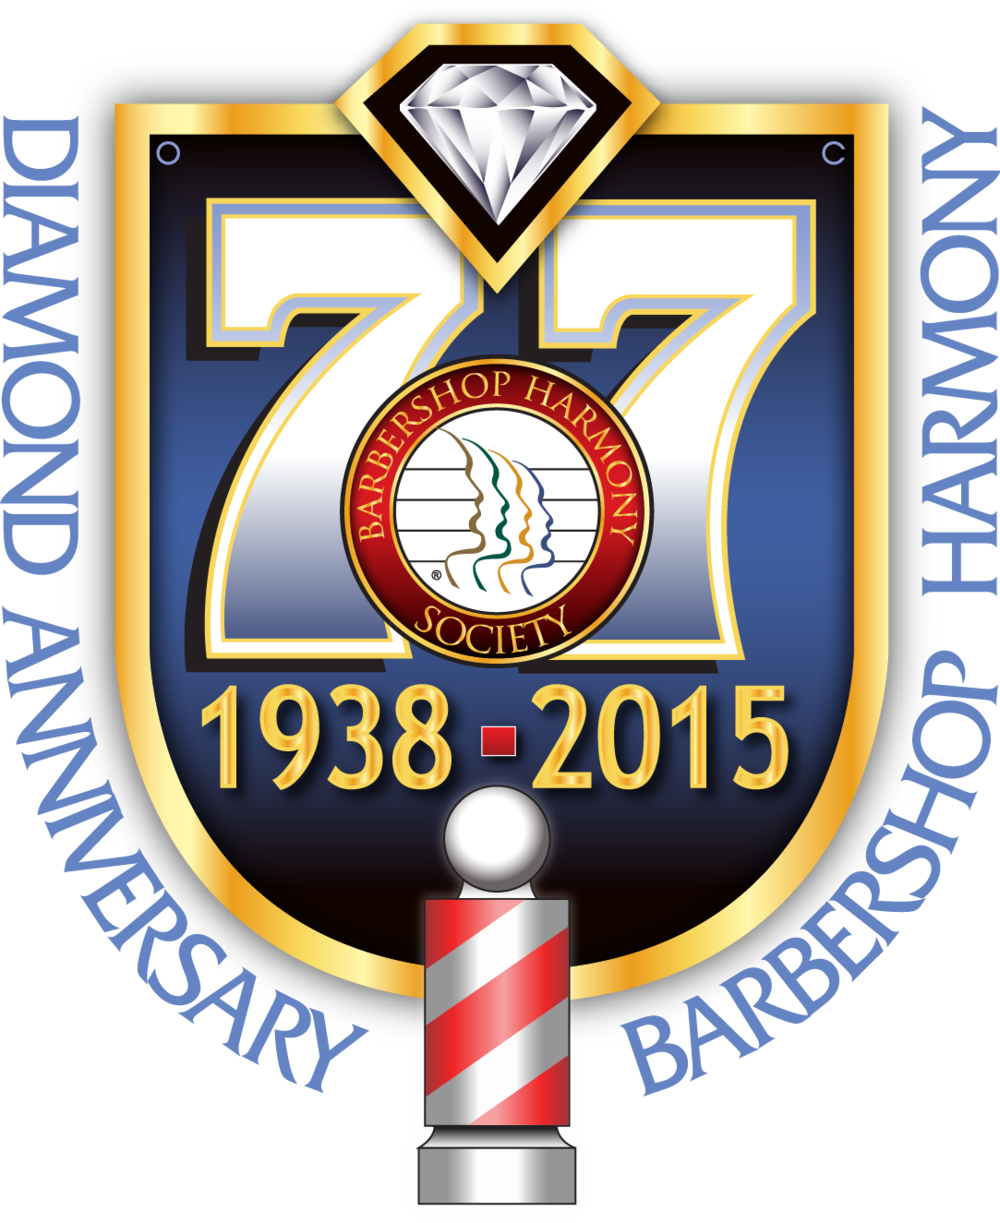 logo_75th_Anniversary.png